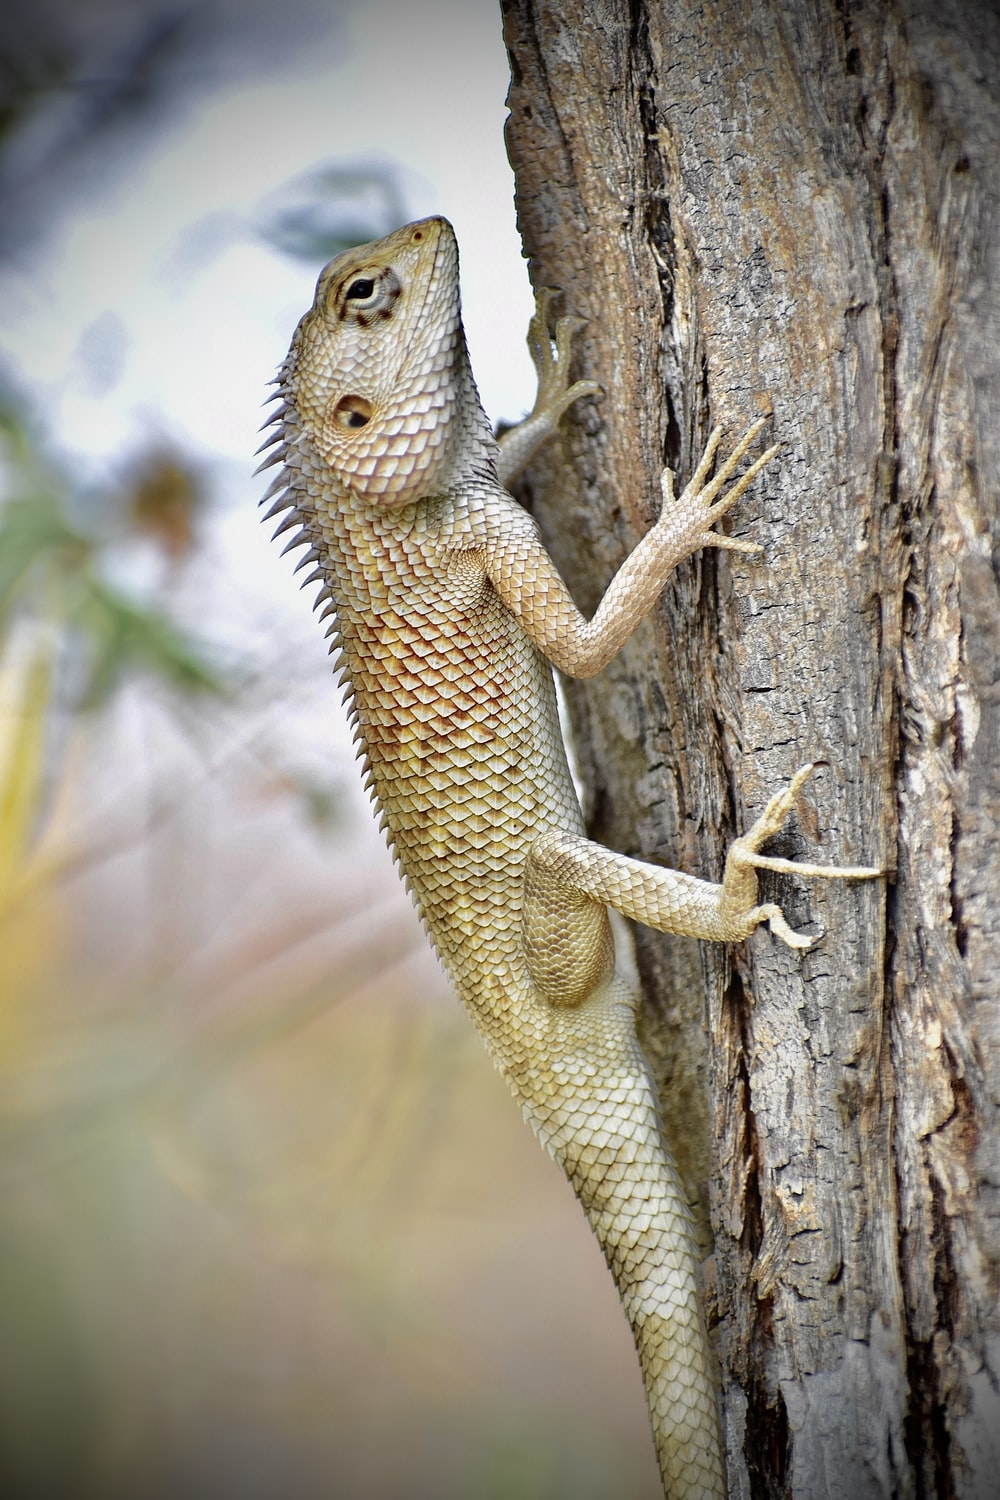 brown and white bearded dragon on brown tree trunk during daytime